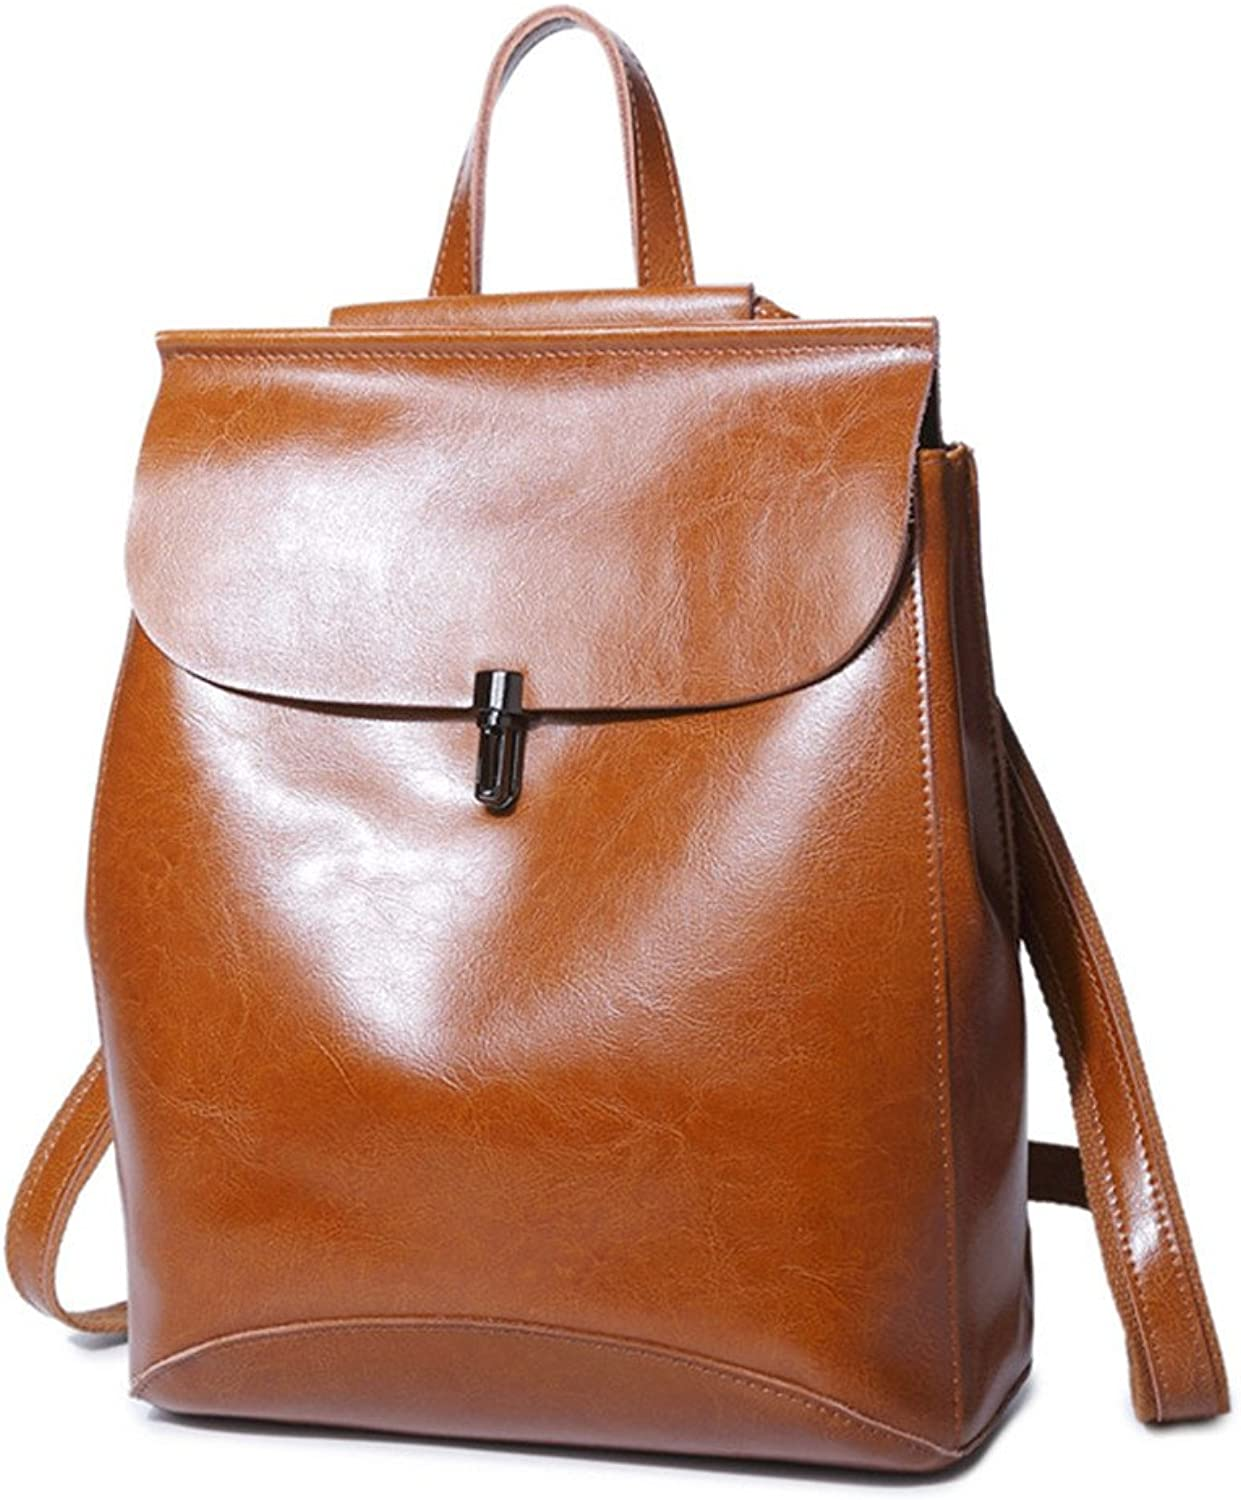 Leather Canvas Ms Cross Shoulder Messenger Bag Travel Oil Wax Cowhide Backpack Brown